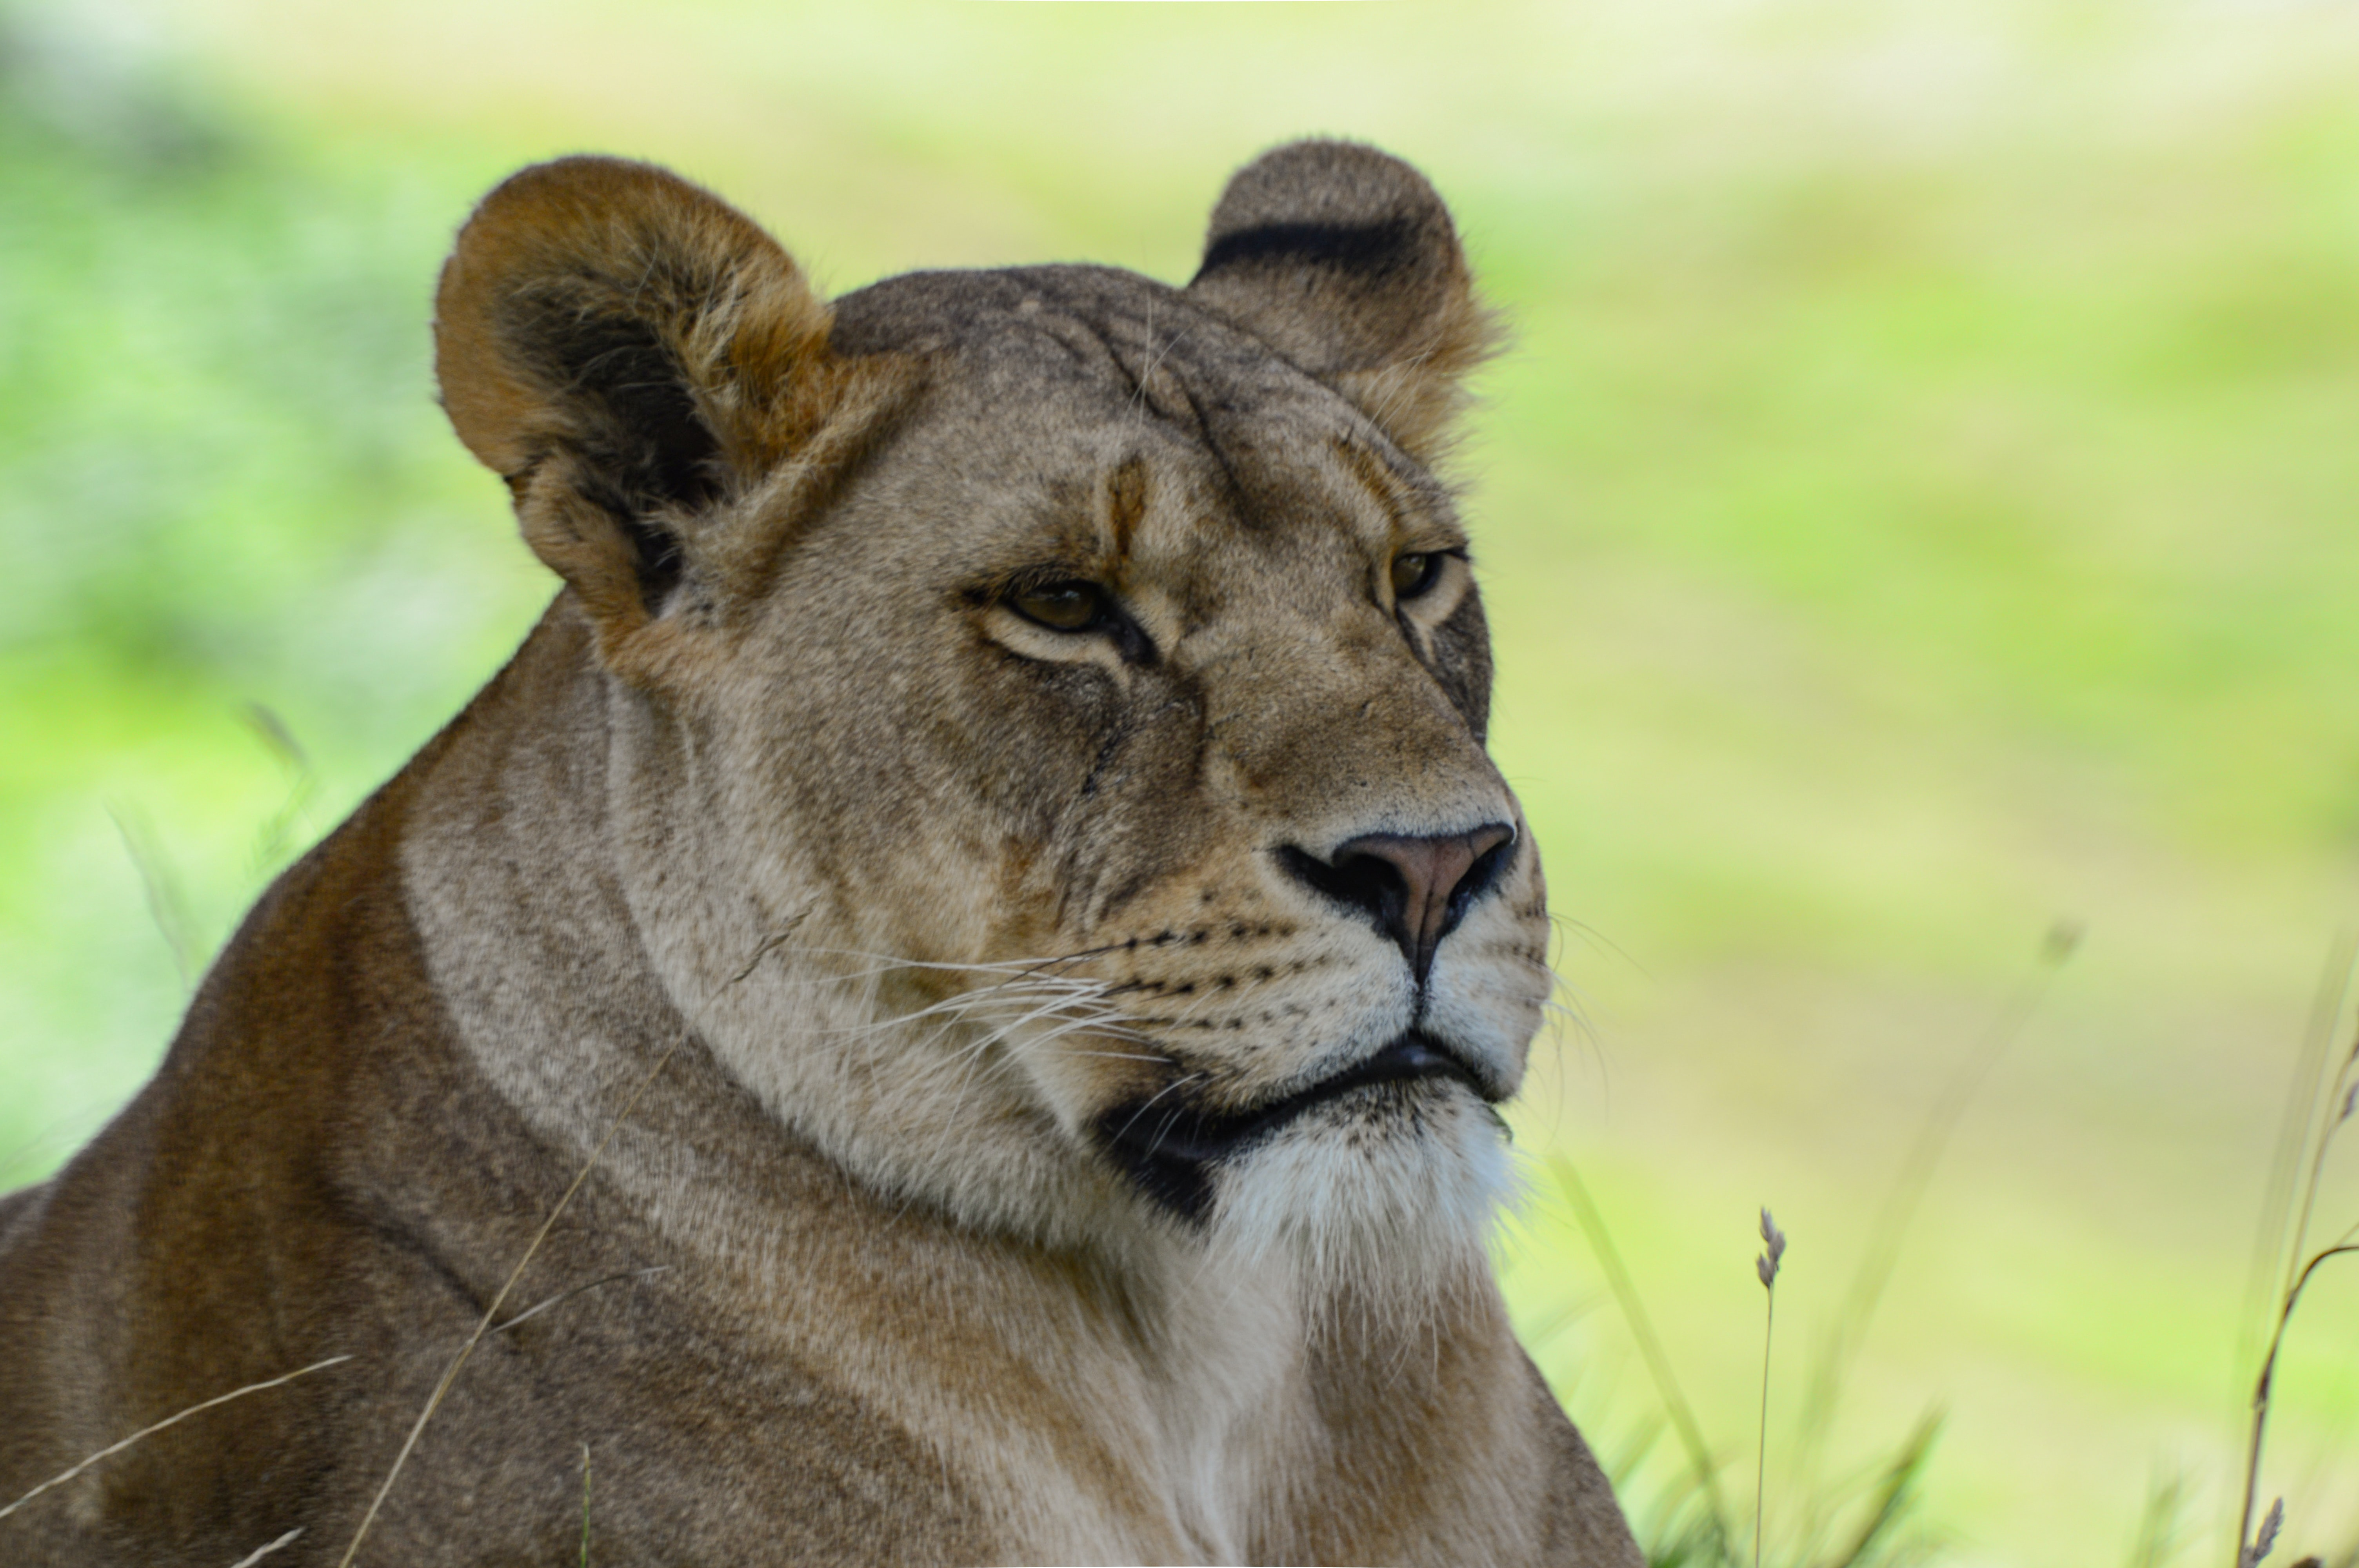 lioness lying on green grass field